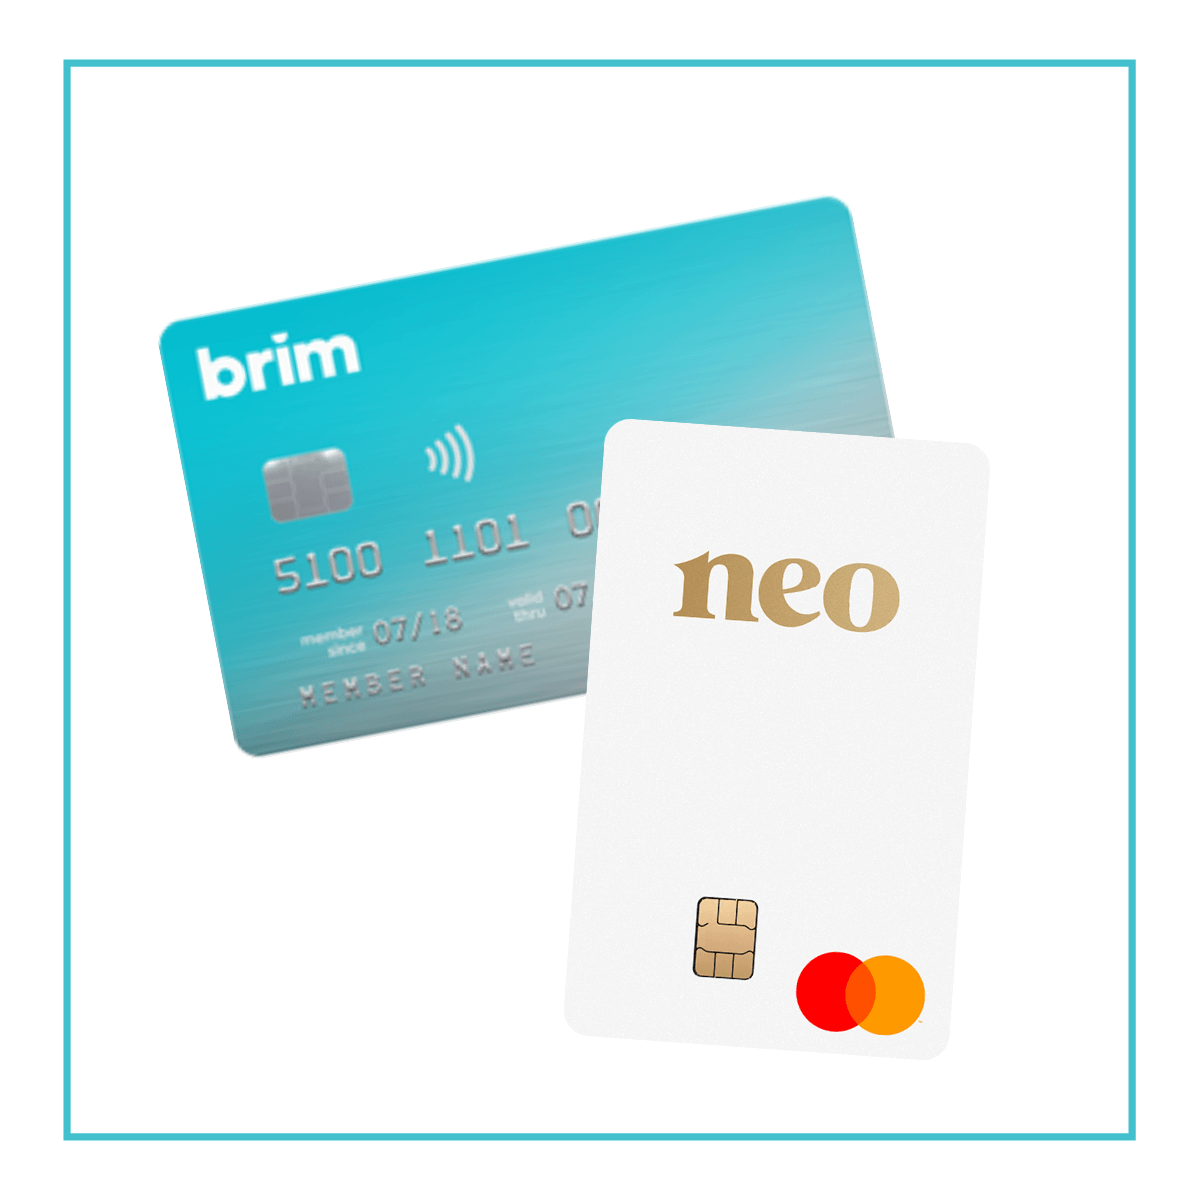 Brim Financial vs. Neo Financial